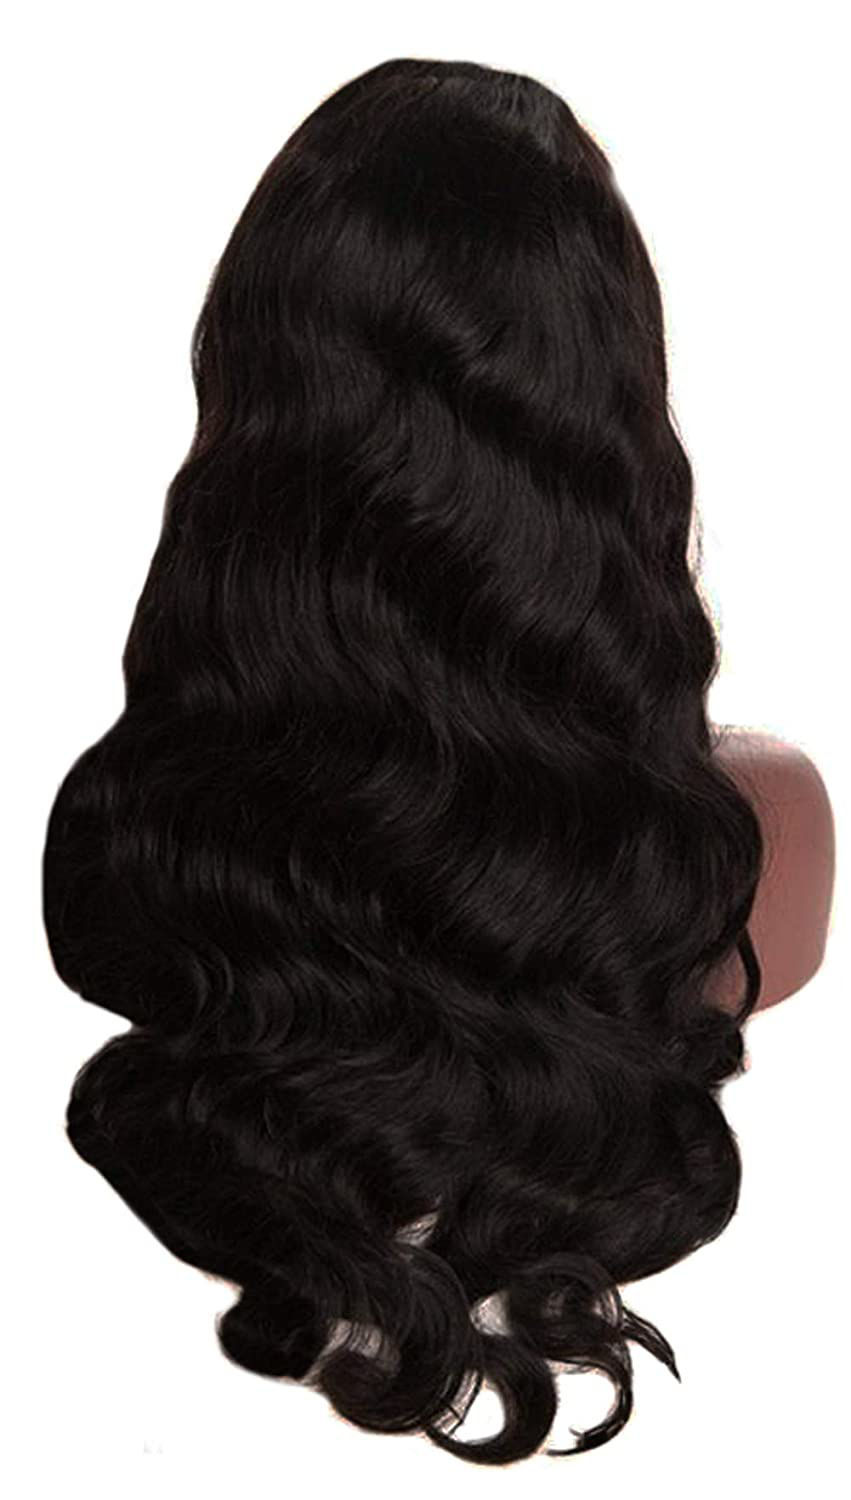 Remy Human Hair Wigs Body Wave Lace Closure Wig Human Hair 4×4 Lace Closure Wig for Black Women 3